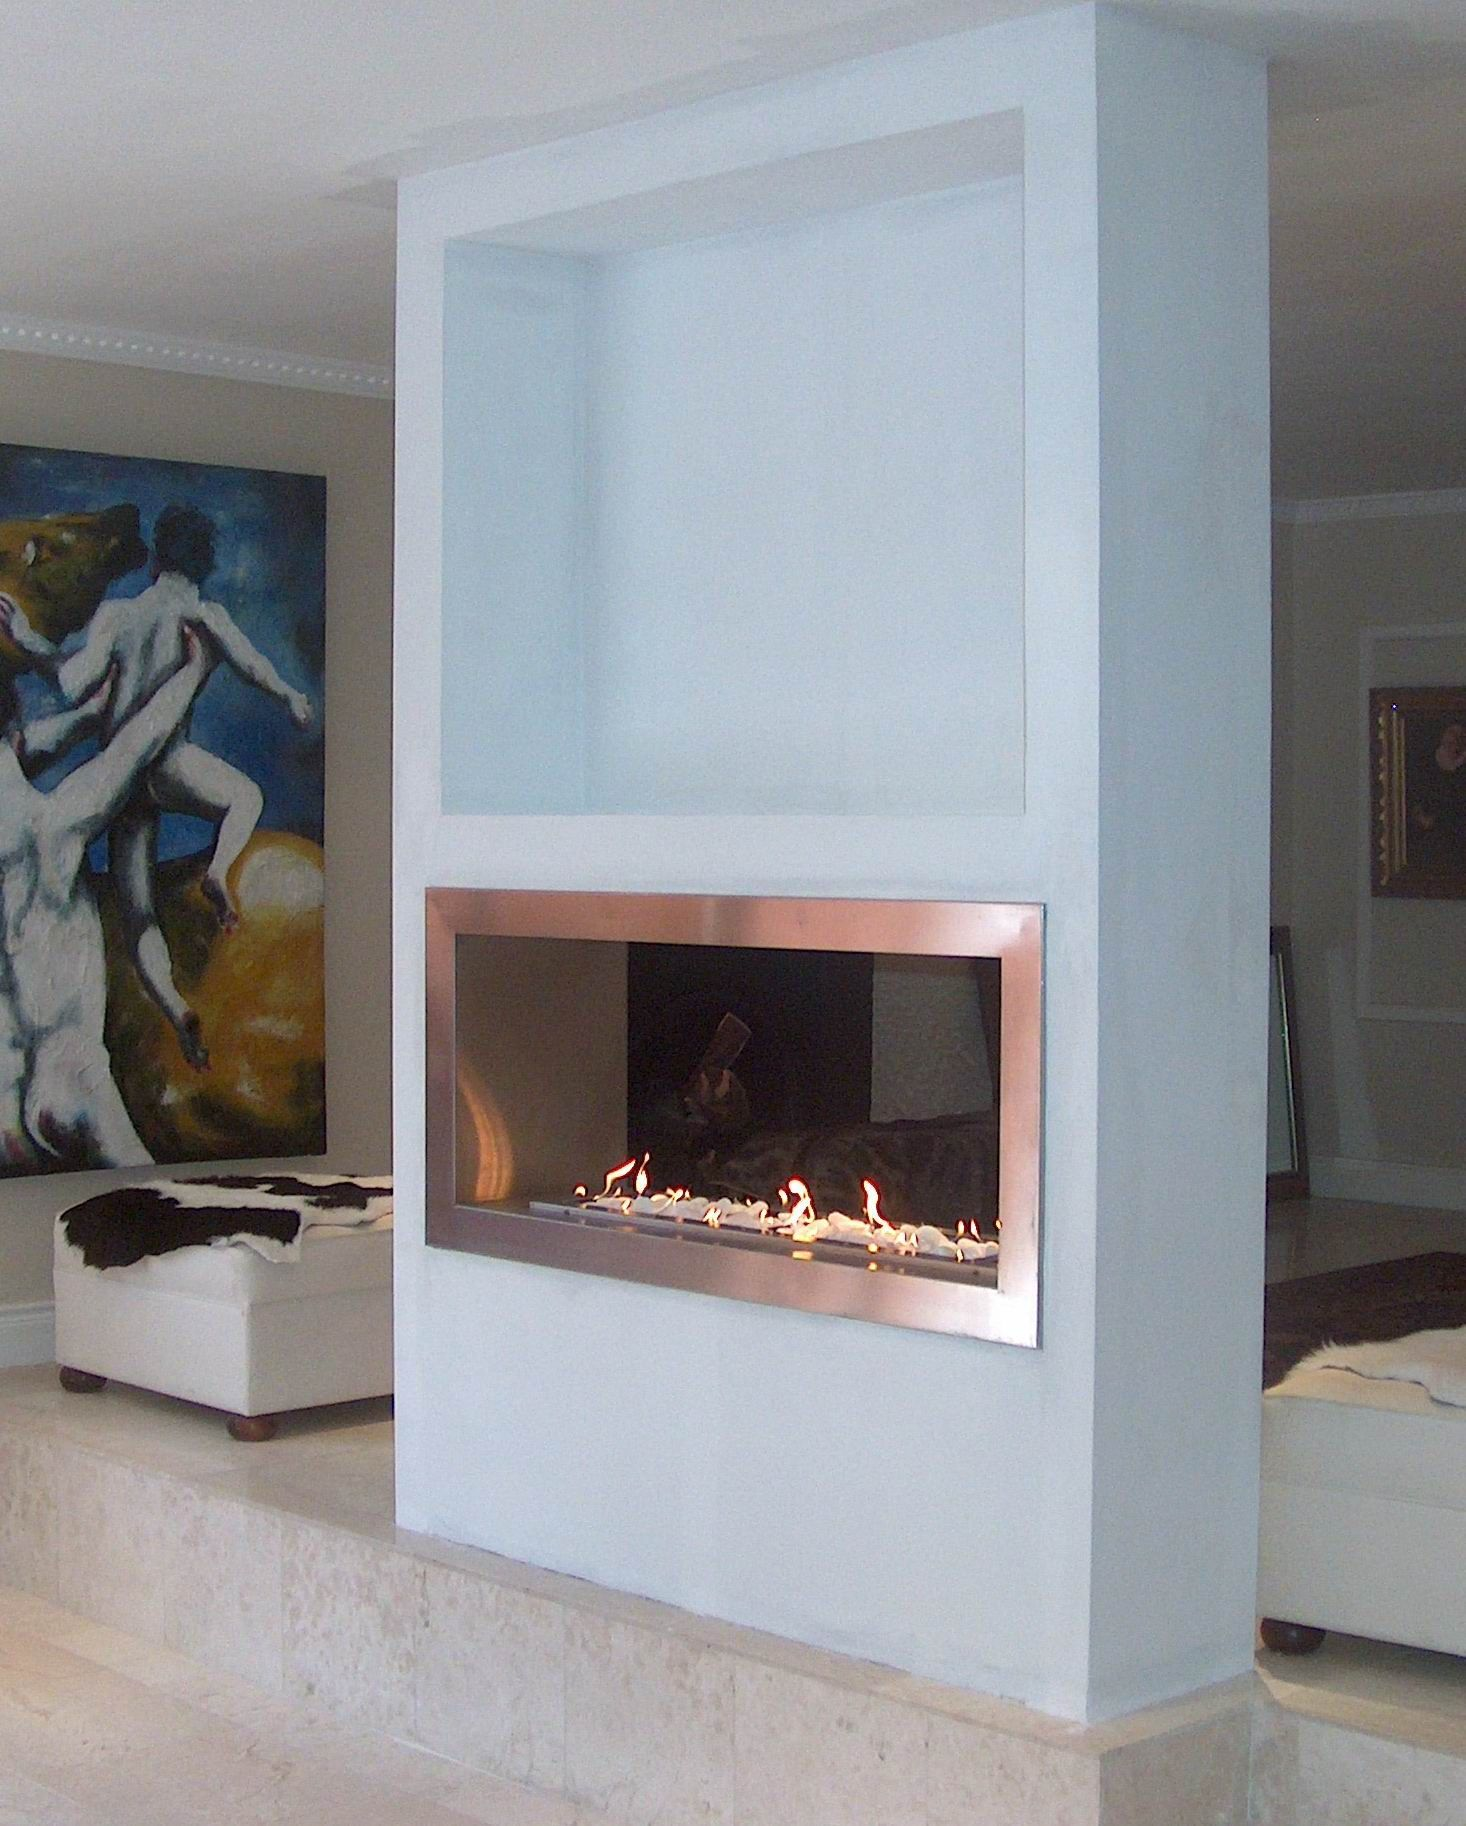 I Know Which Wall Want A Double Sided Fire Place On And Its Electric So No Gas Plumbing Now To Find Local Supplier